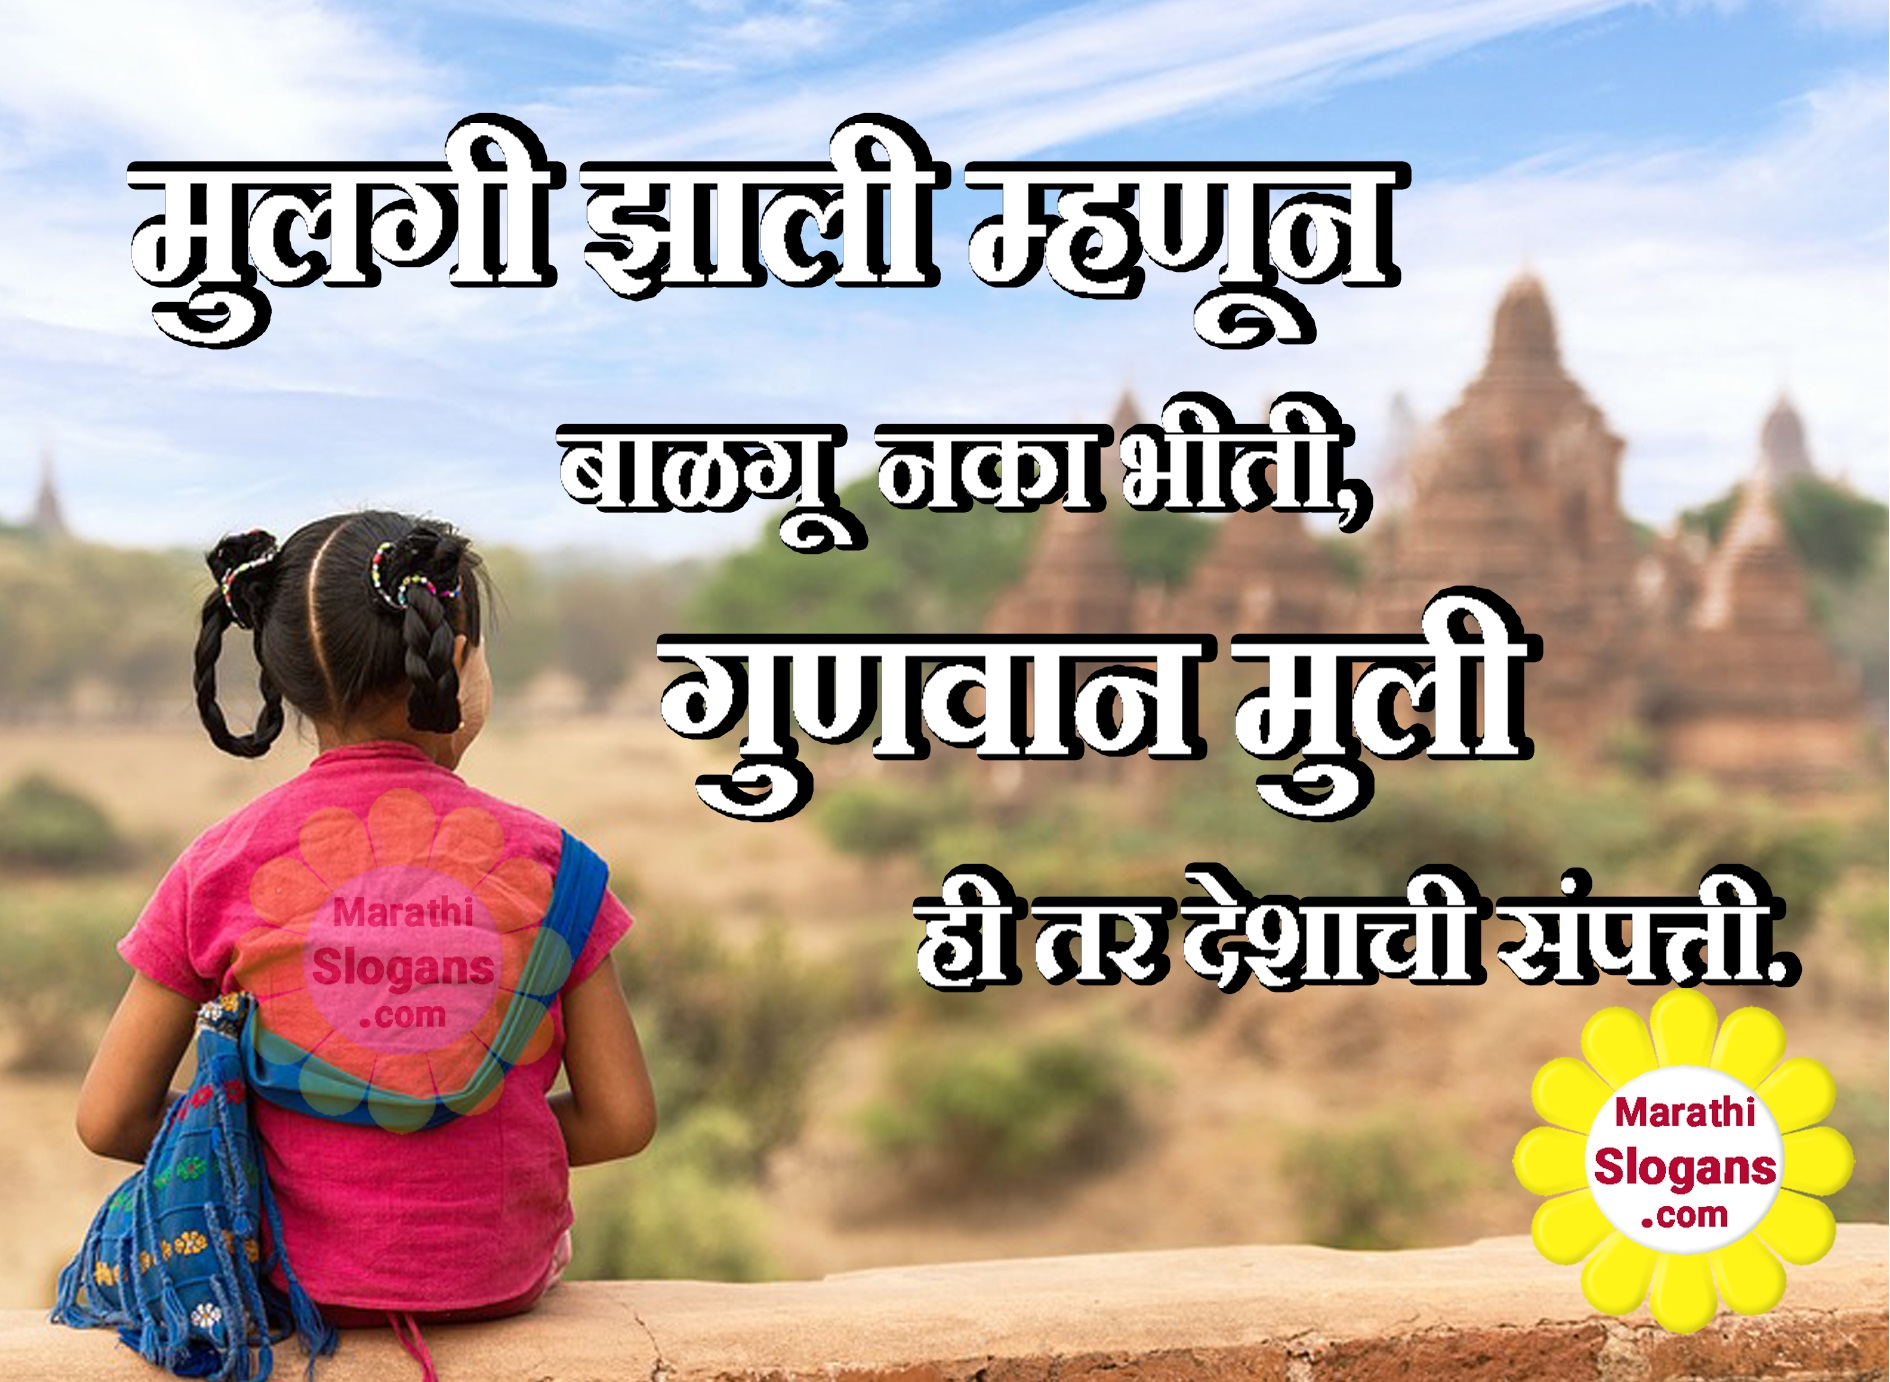 save girl child essay in marathi Fnjs group acquires, develops and manages retail, commercial, and residential properties.